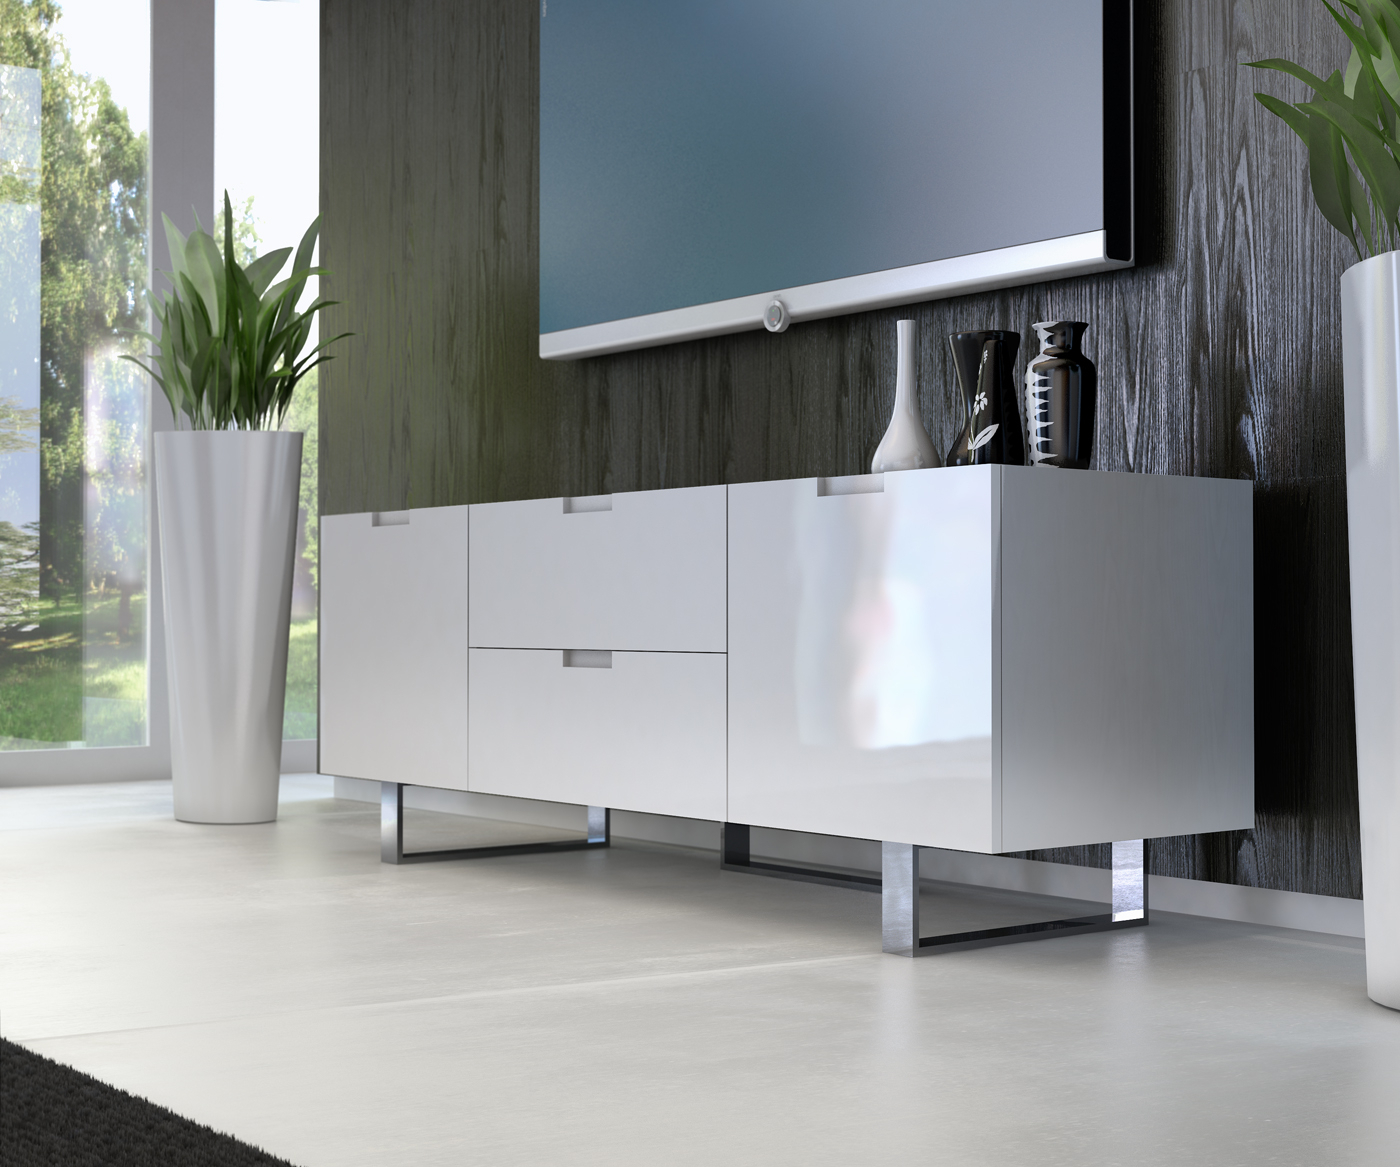 Widely Used Contemporary Tv Stand In Wenge Walnut Or White Lacquer San Diego Regarding Modern Contemporary Tv Stands (View 20 of 20)